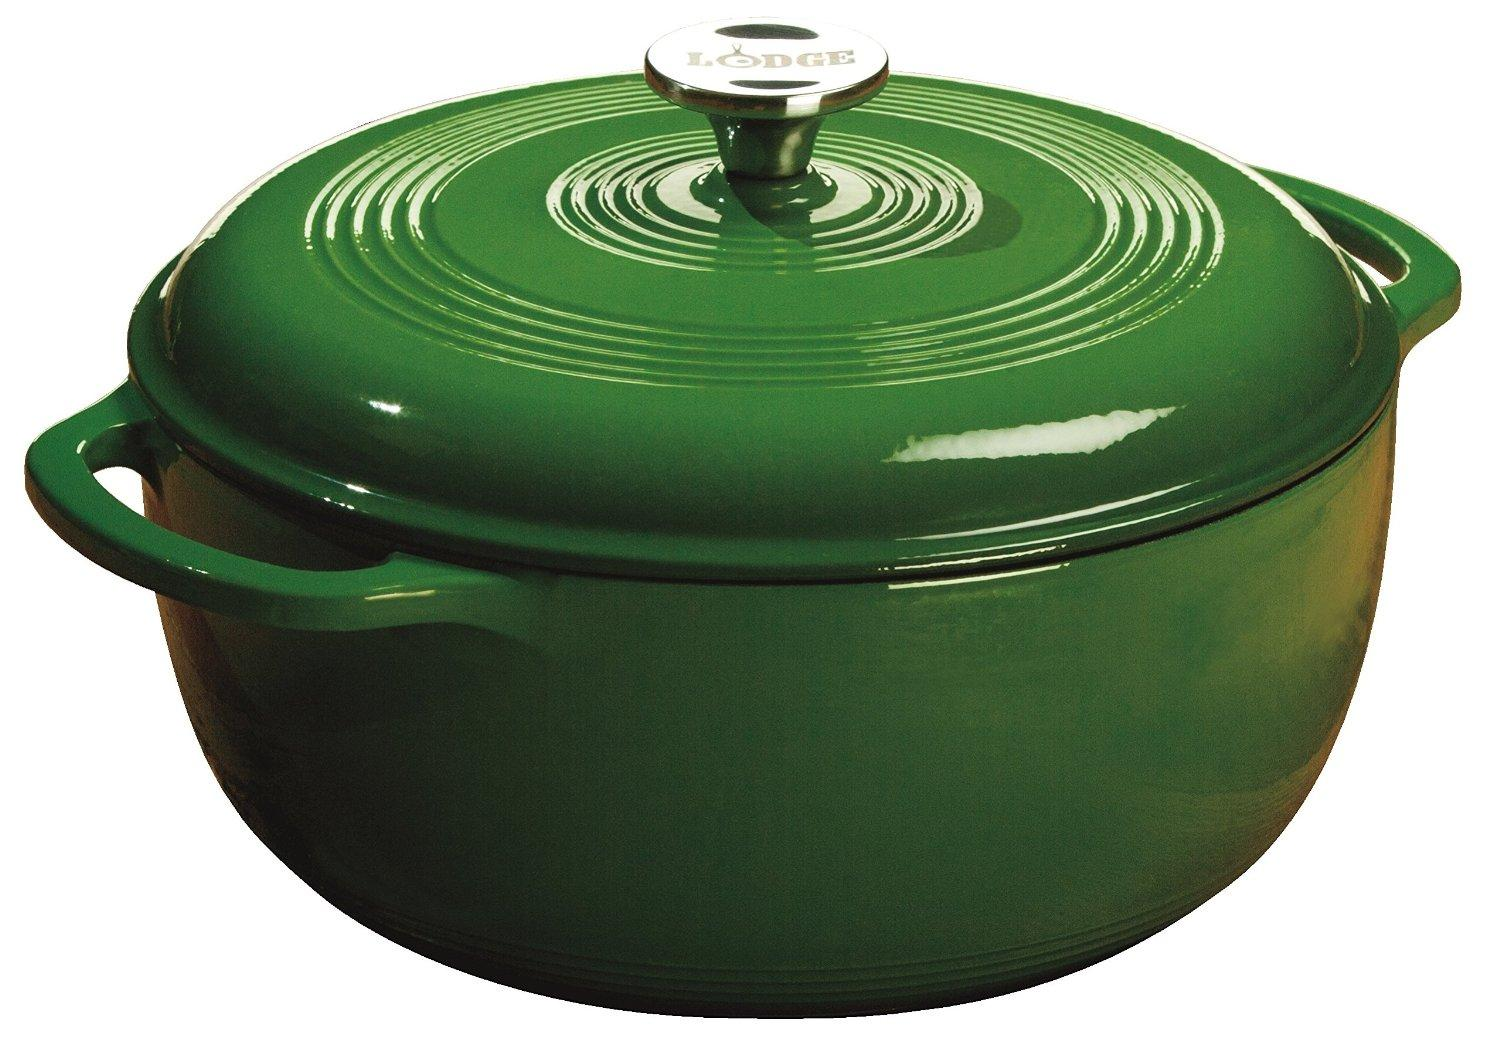 Lodge Color EC6D53 Enameled Cast Iron Dutch Oven, Emerald Green, 6-Quart